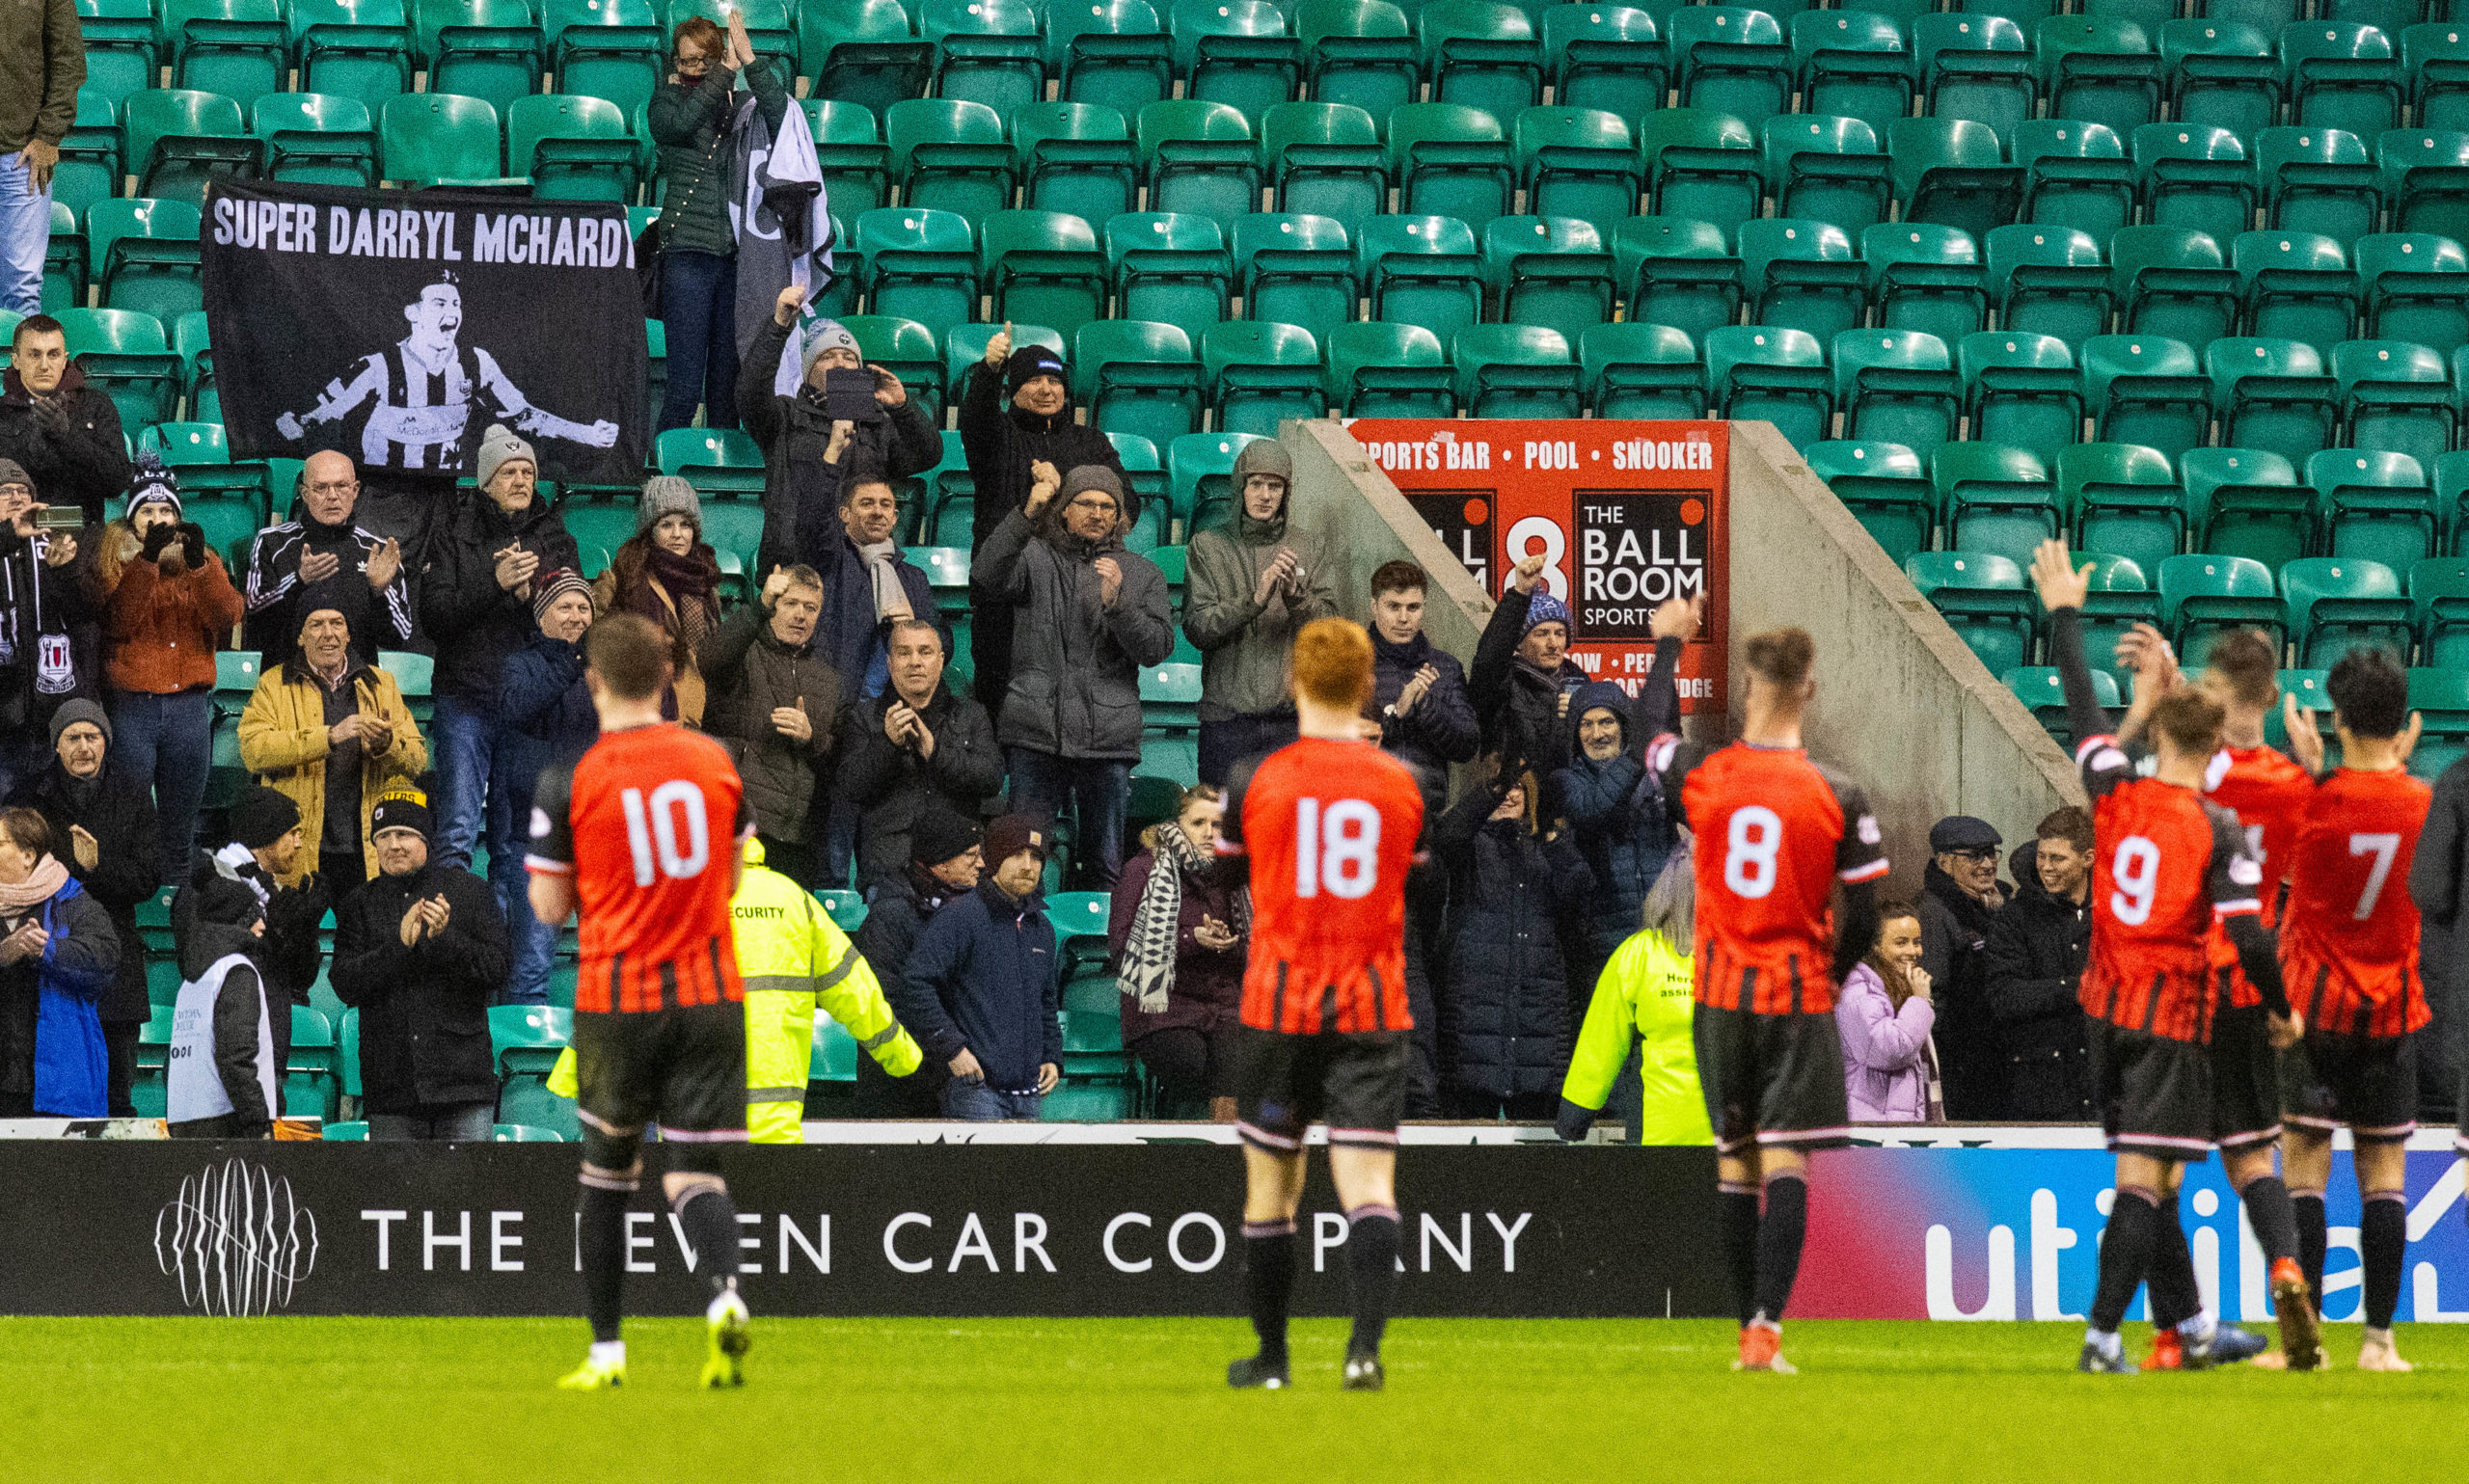 Season tickets are not yet on sale for Elgin City supporters